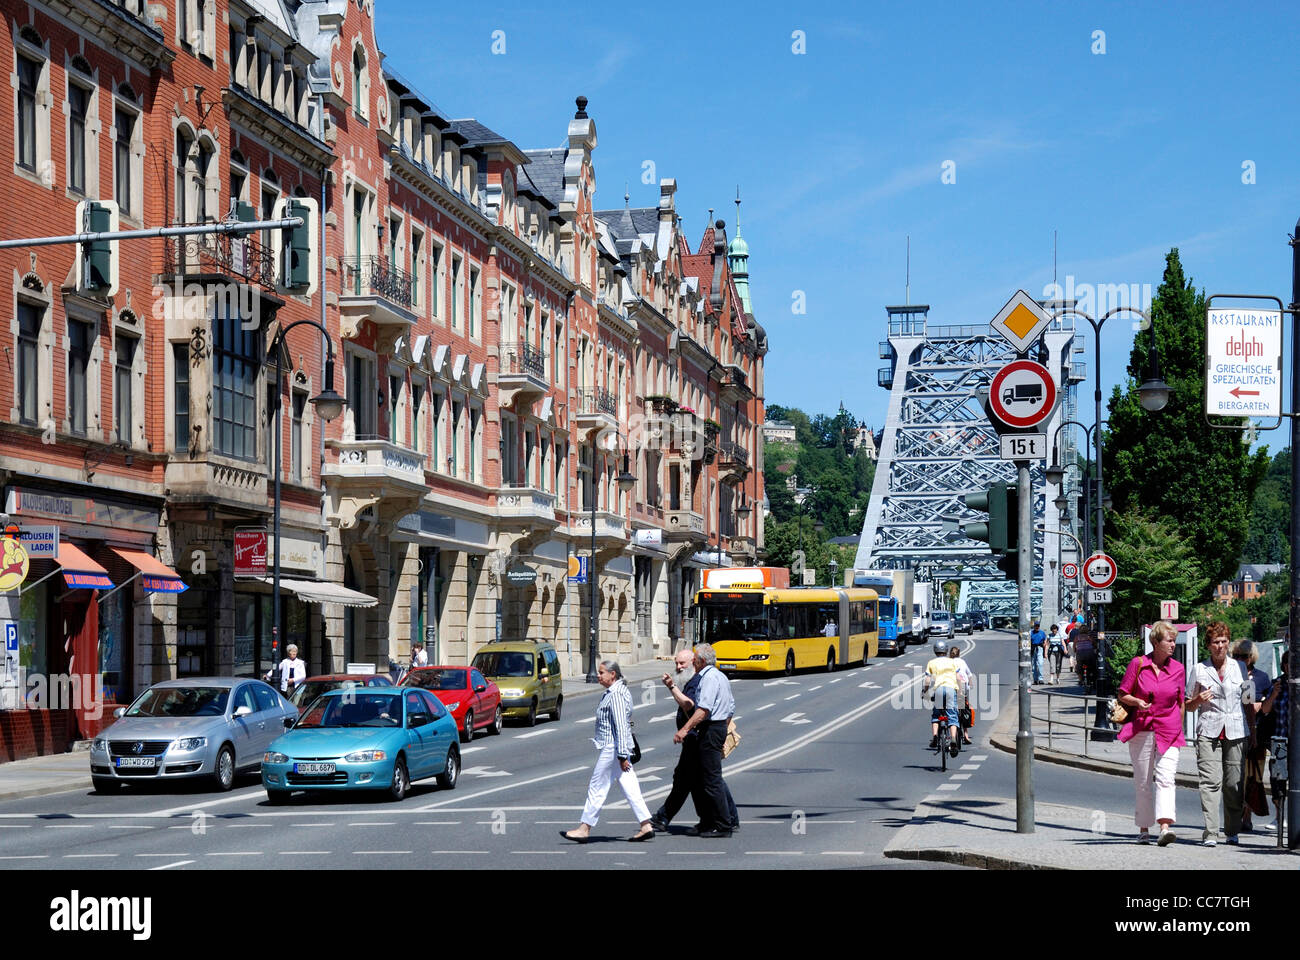 Street scene with residential buildings at the Schiller place in Dresden. - Stock Image